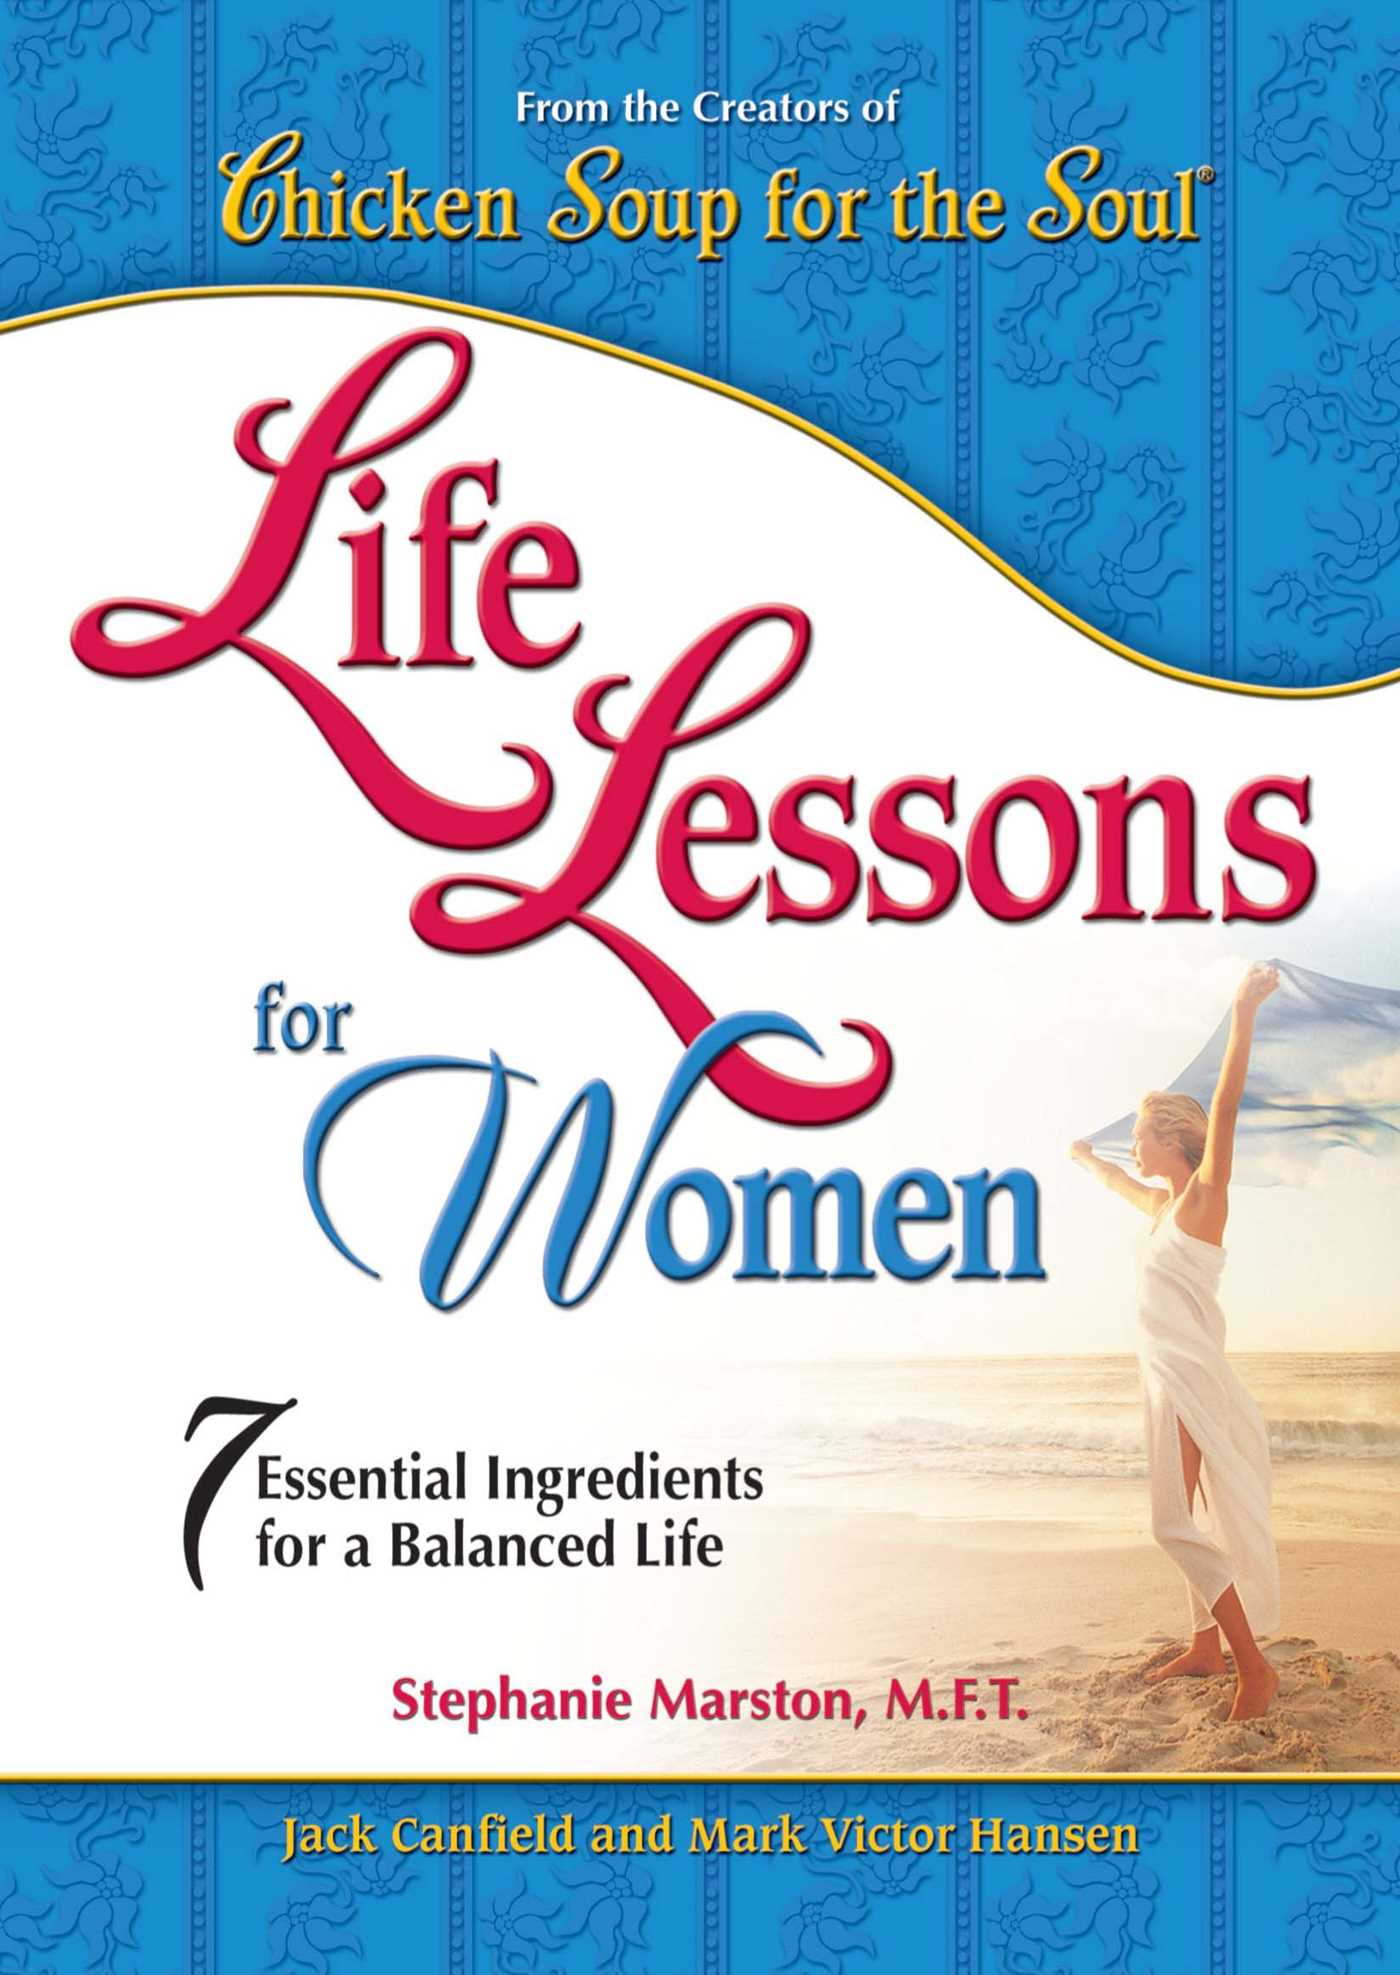 Life lessons for women 9781623610159 hr